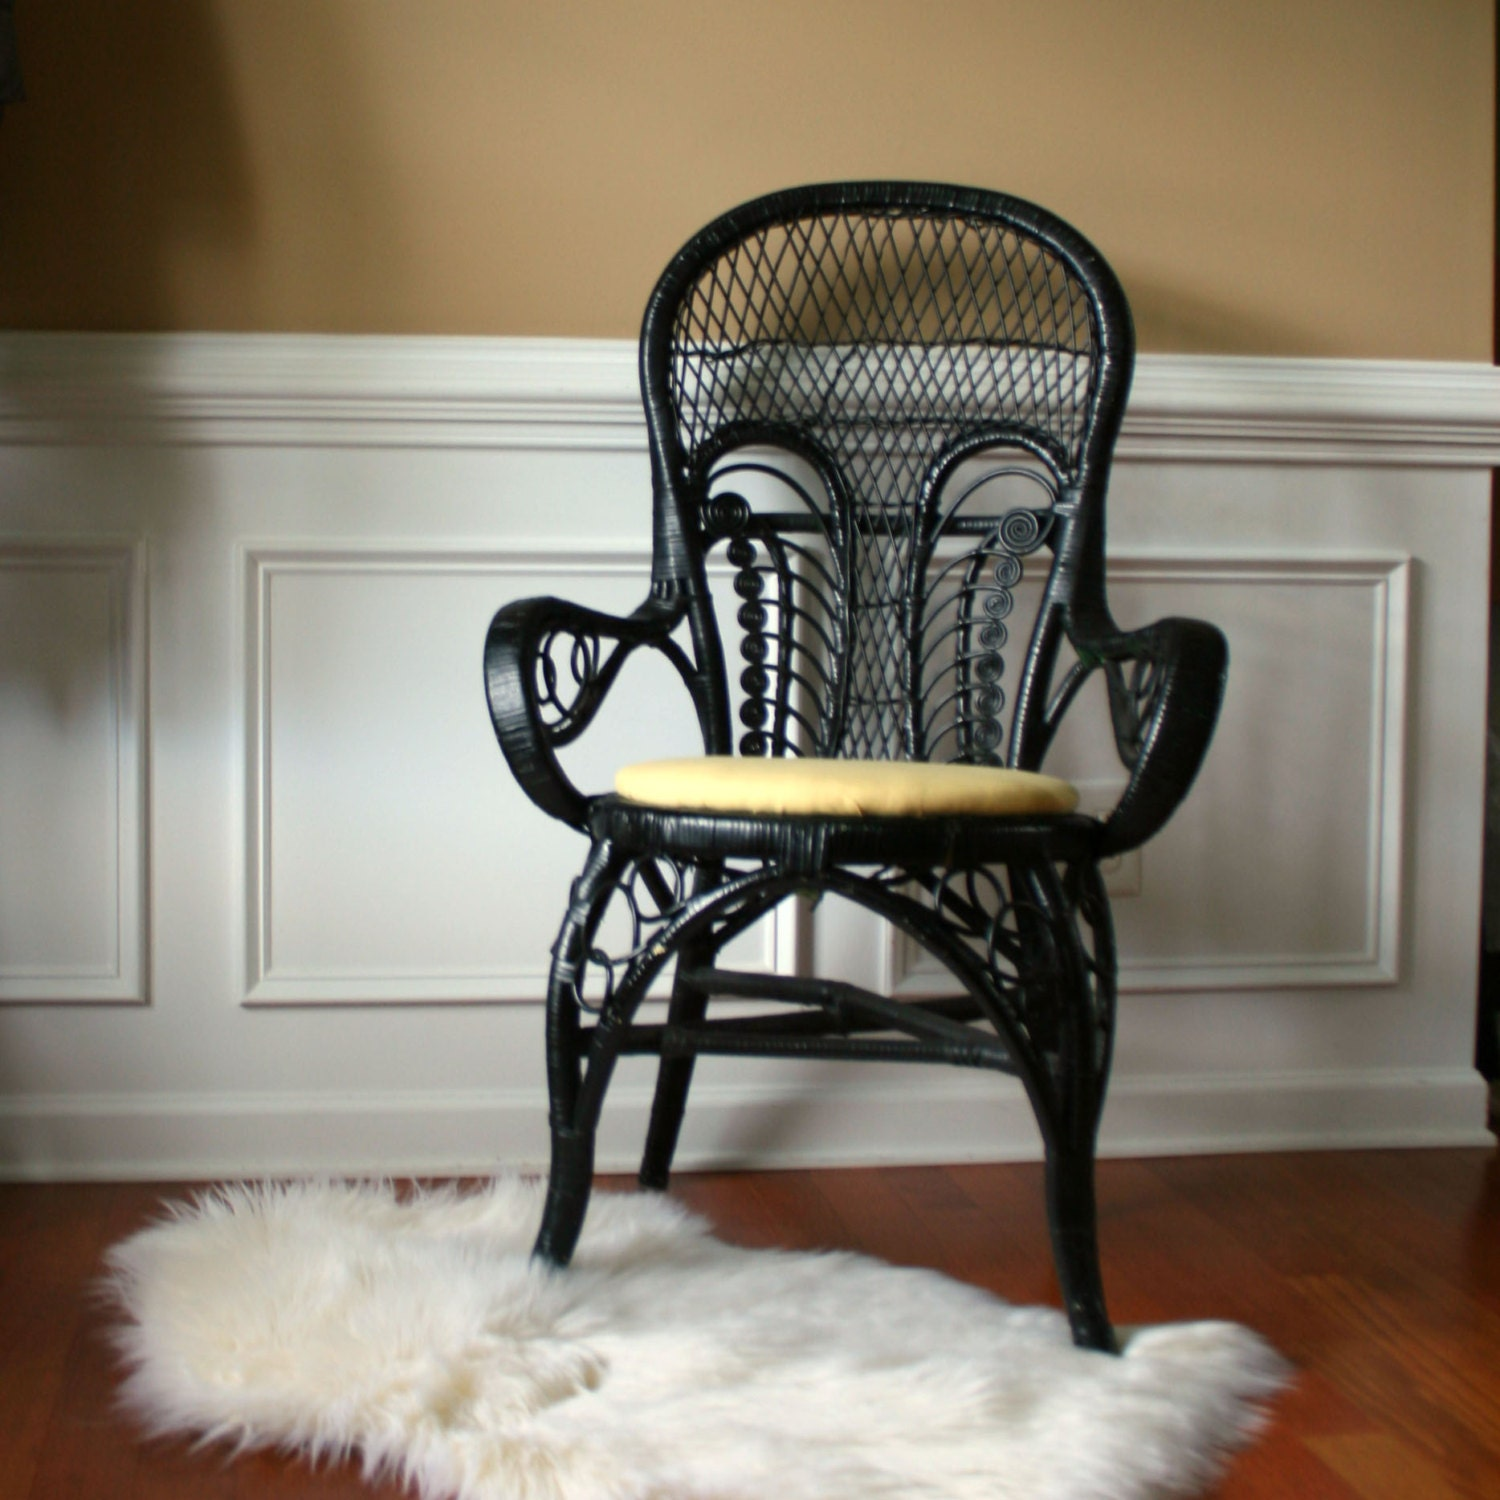 Asian Wicker Accent Chair: Vintage Modern Rattan Arm Chair Black Chinoiserie Accent Desk